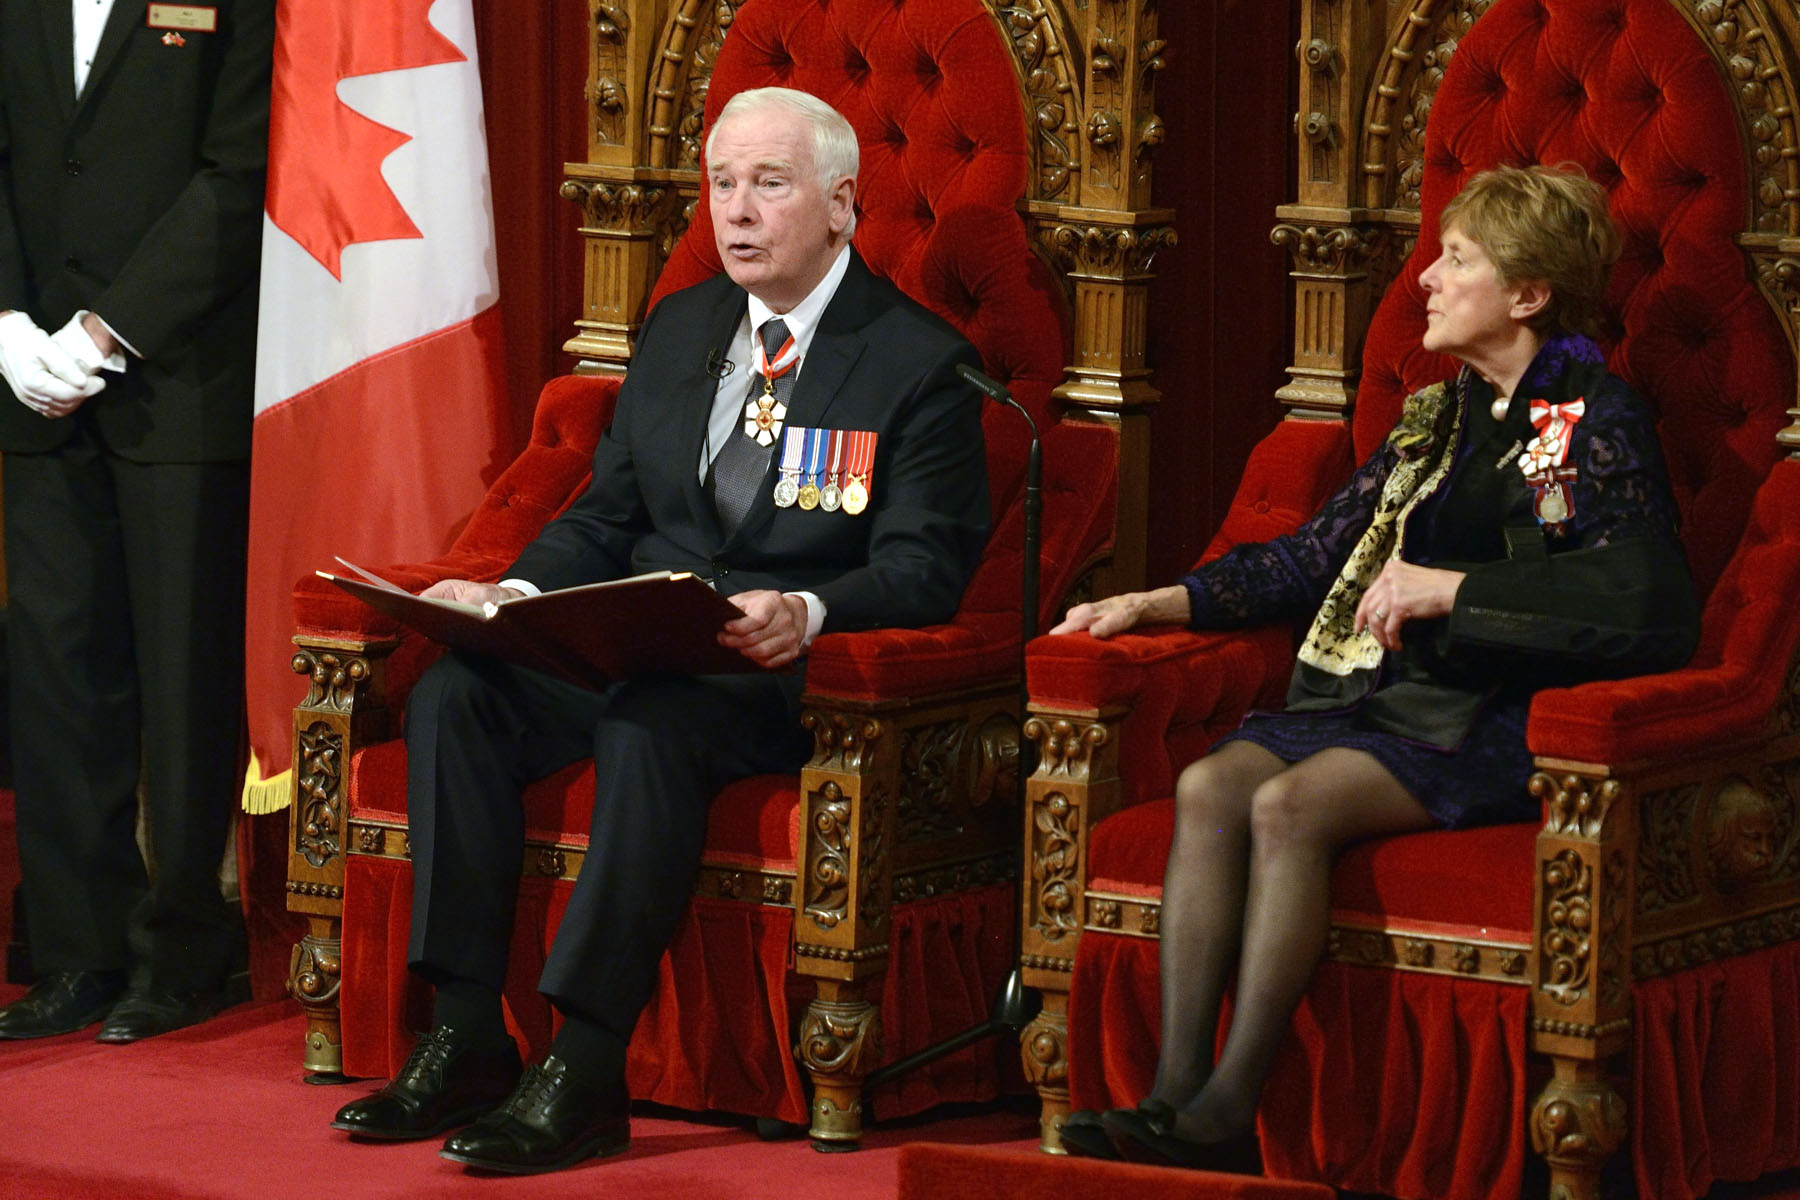 Governor General David Johnston's delivered his third Speech from the Throne since his installation on October 1, 2010.